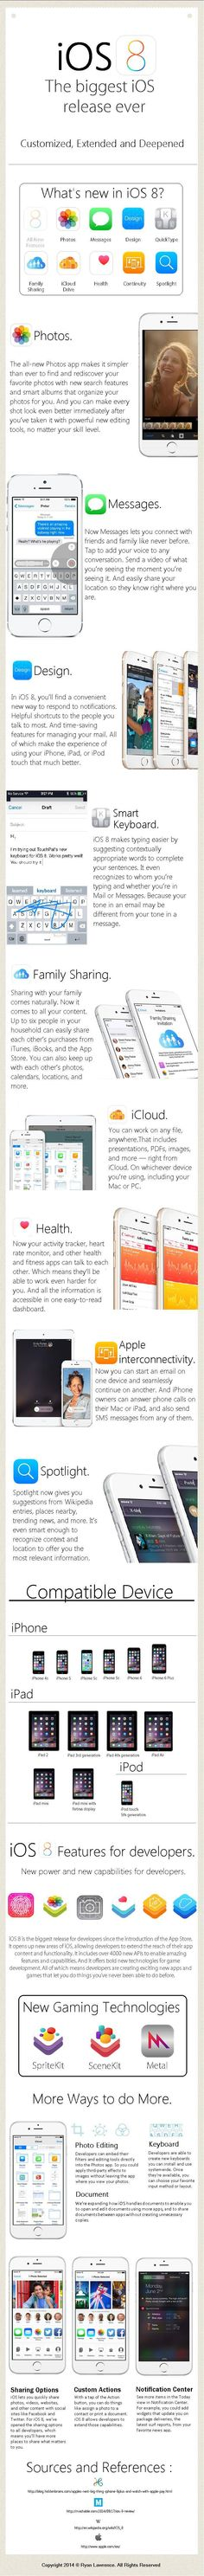 [Infographic] Apple iOS 8 Features : Everything you need to know! by Ryan Lawrence via slideshare Ios Update, Technology Updates, Ios 8, Apple Mac, Mac Os, Android Apps, Need To Know, Everything, Infographics